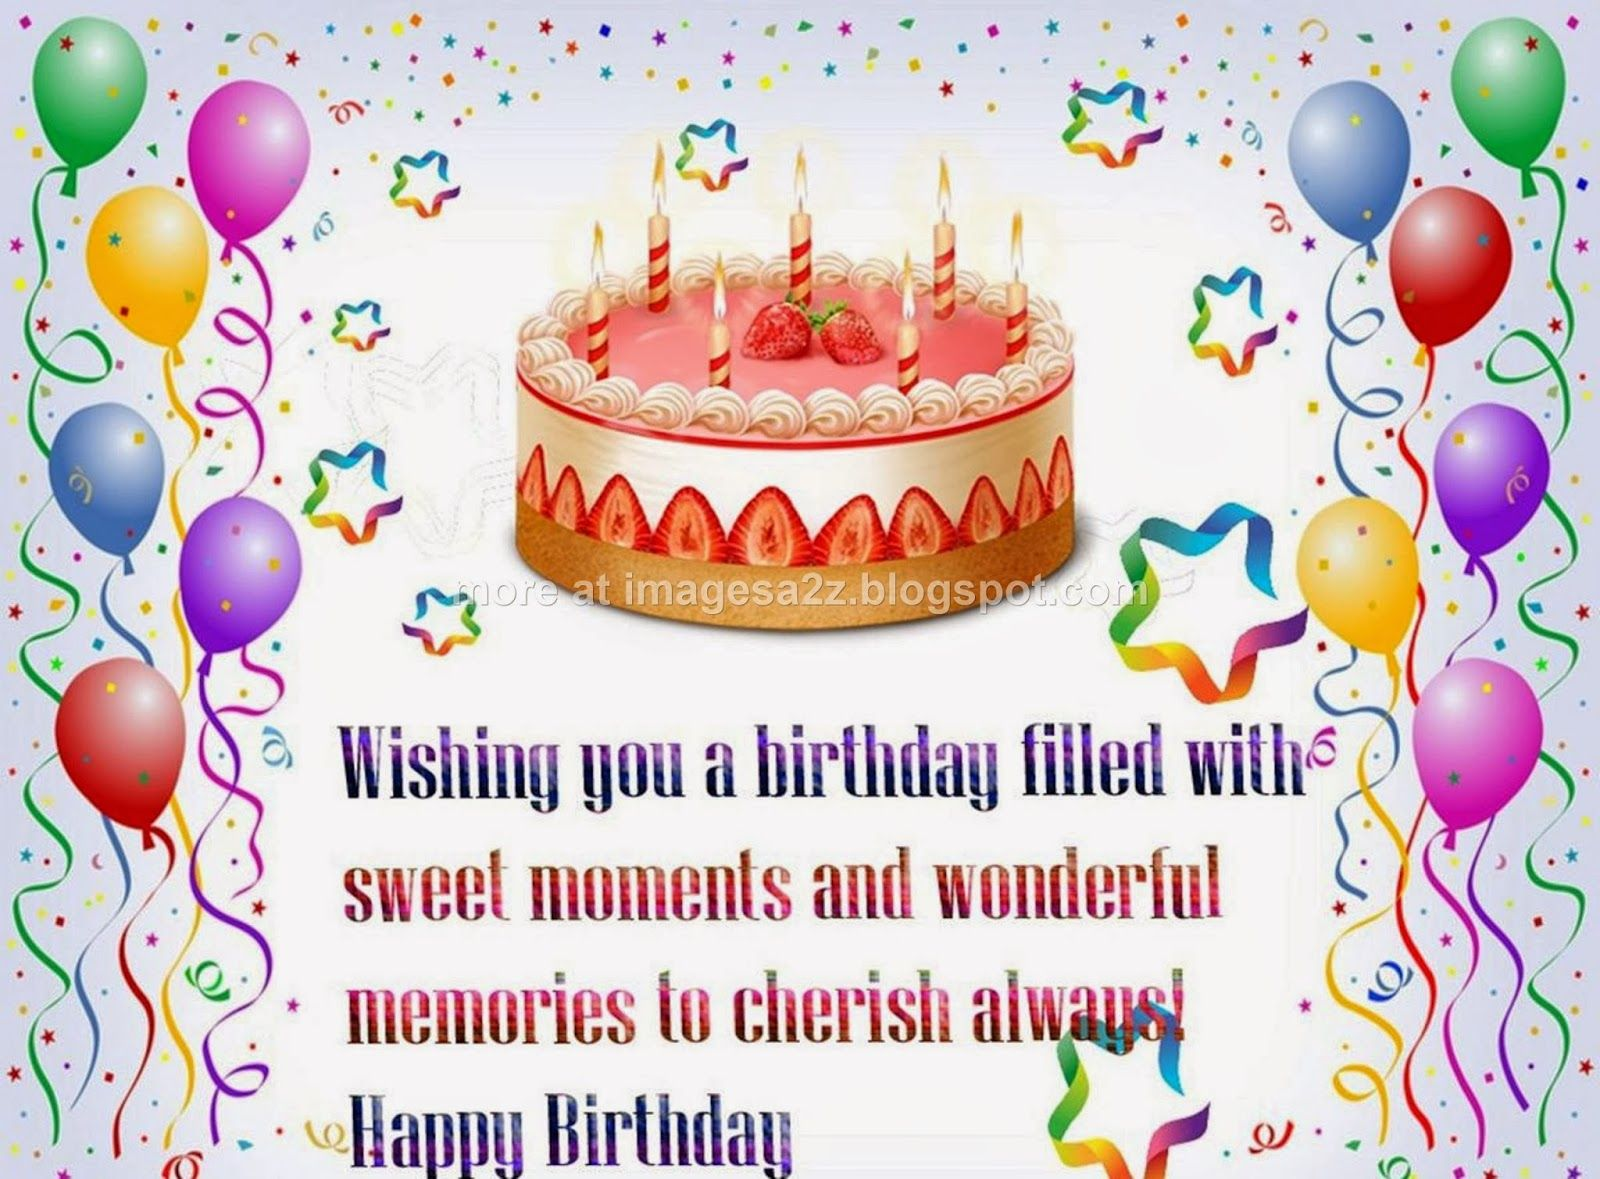 Best Birthday Wishes Quotes Funny Quotes About Friends  Google Search  Birthdays  Pinterest